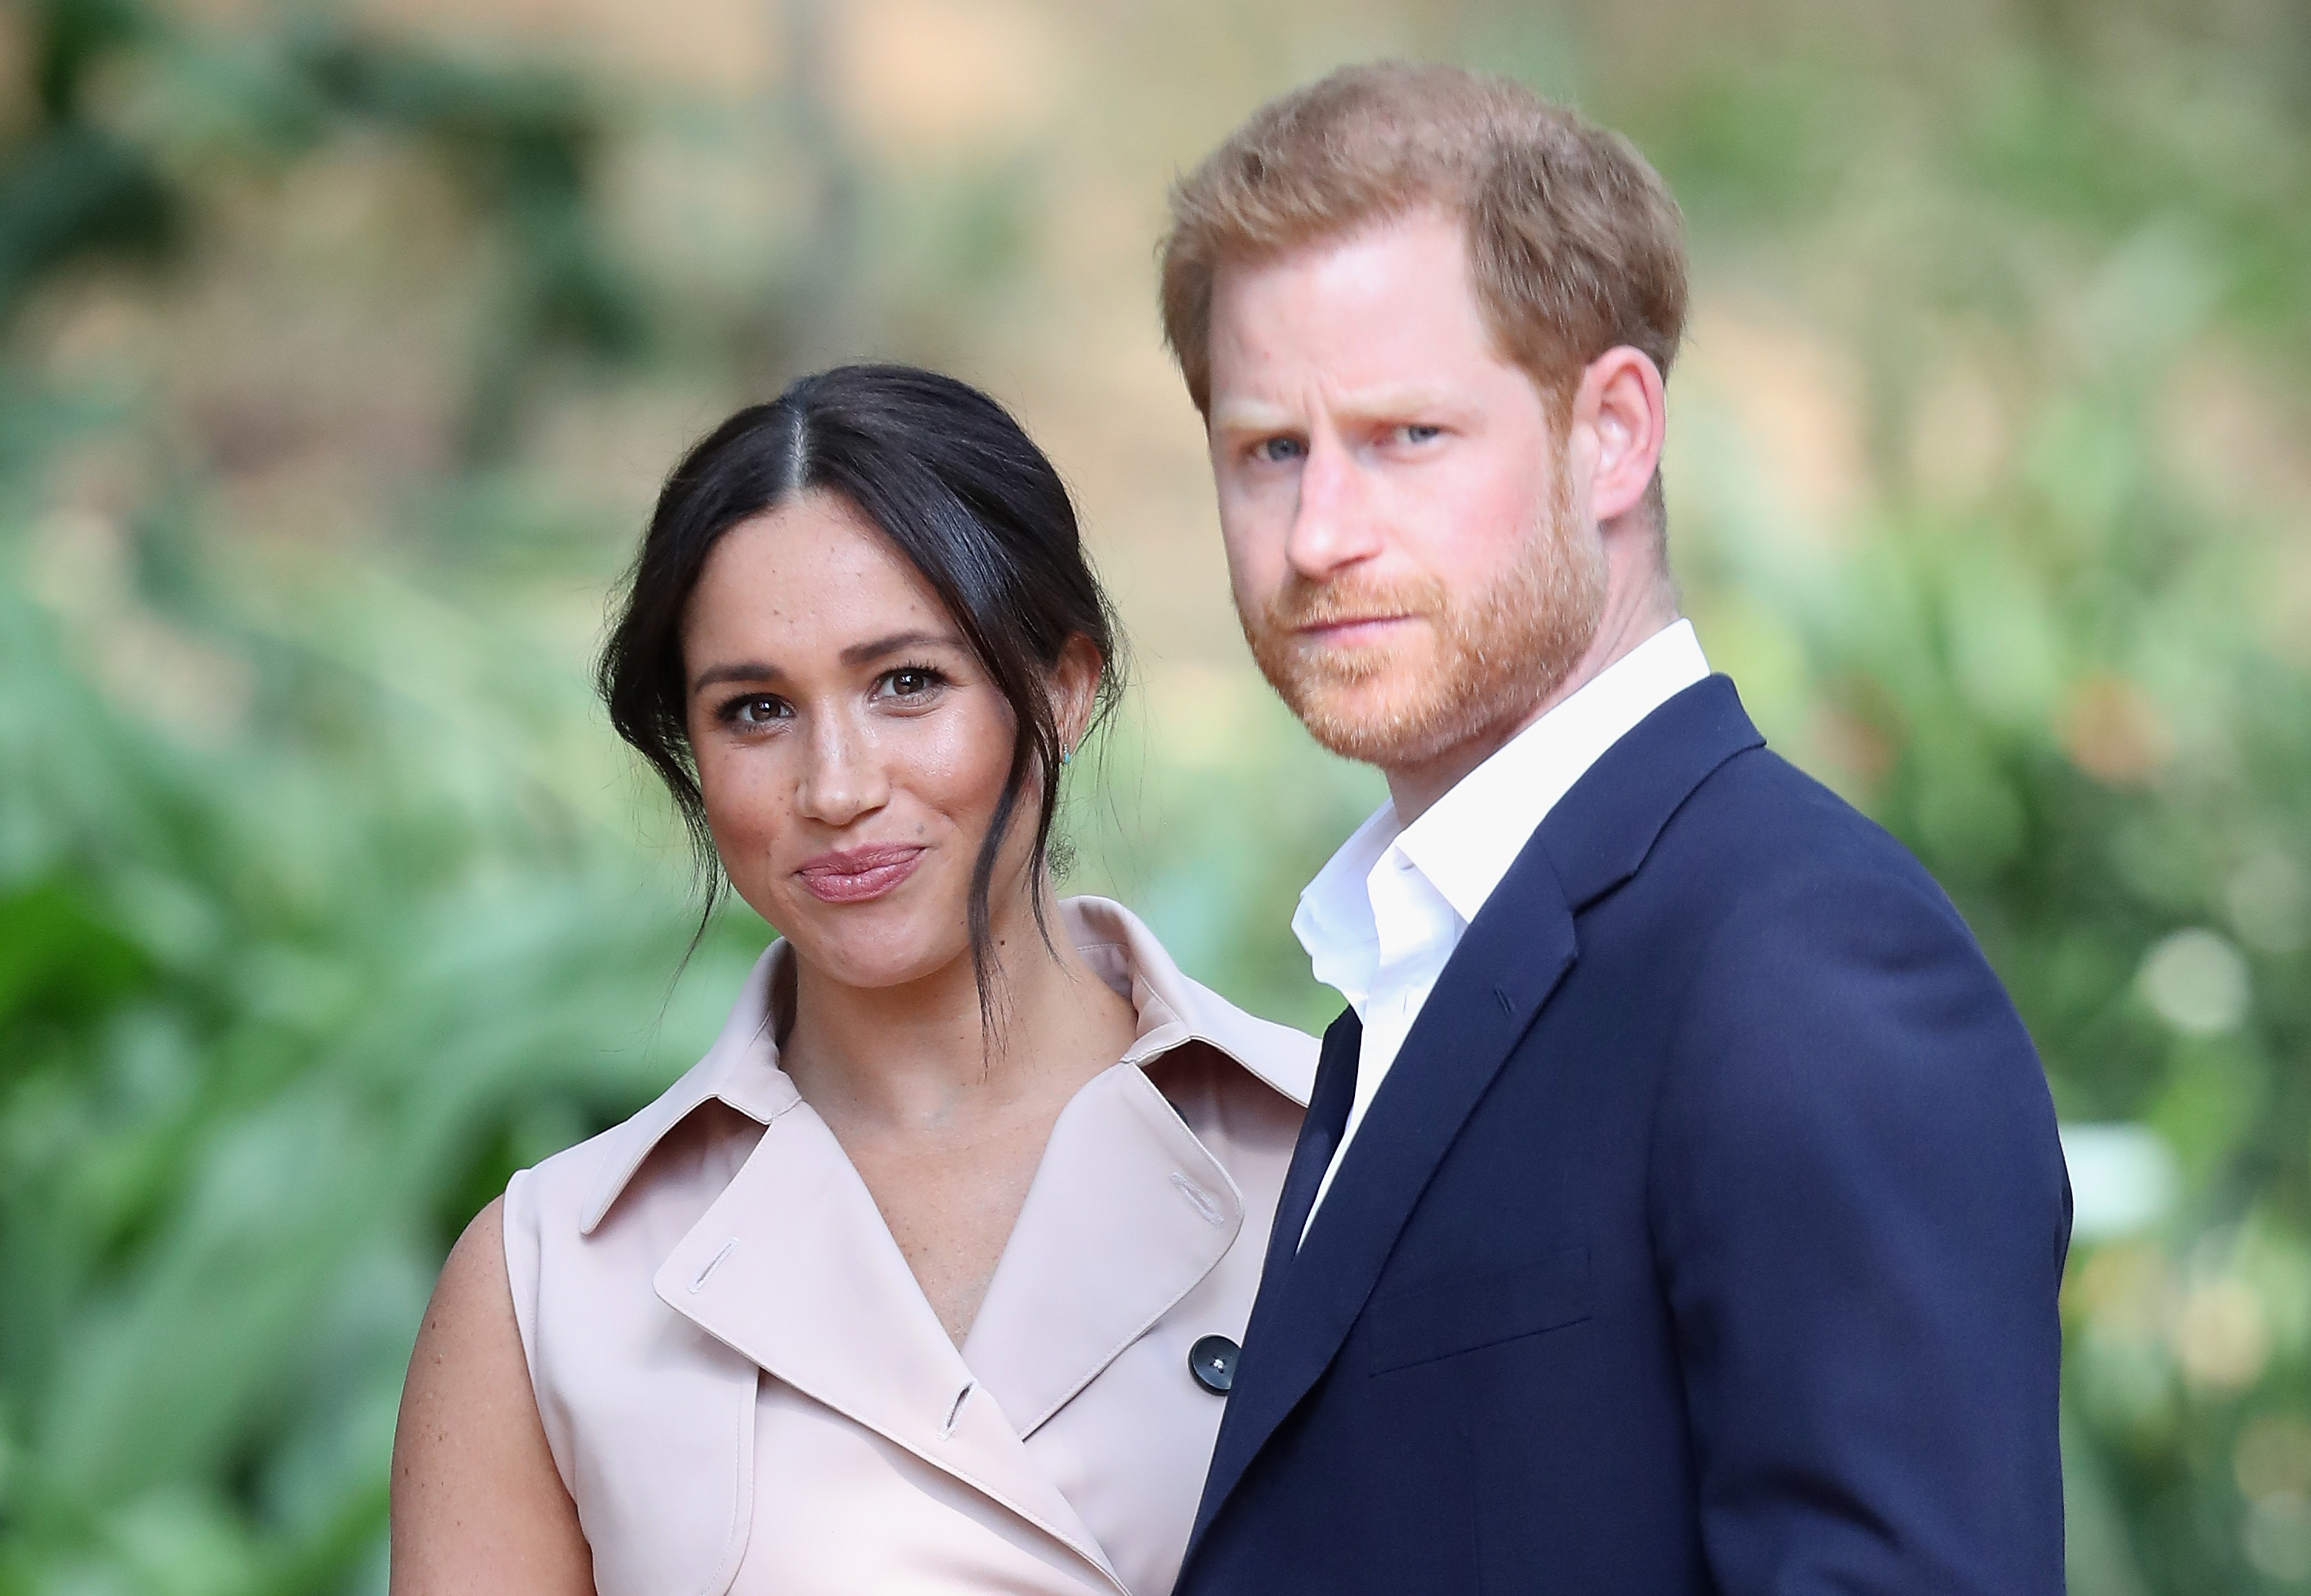 Prince Harry, Duke of Sussex and Meghan Markle, Duchess of Sussex on October 02, 2019 in Johannesburg, South Africa.